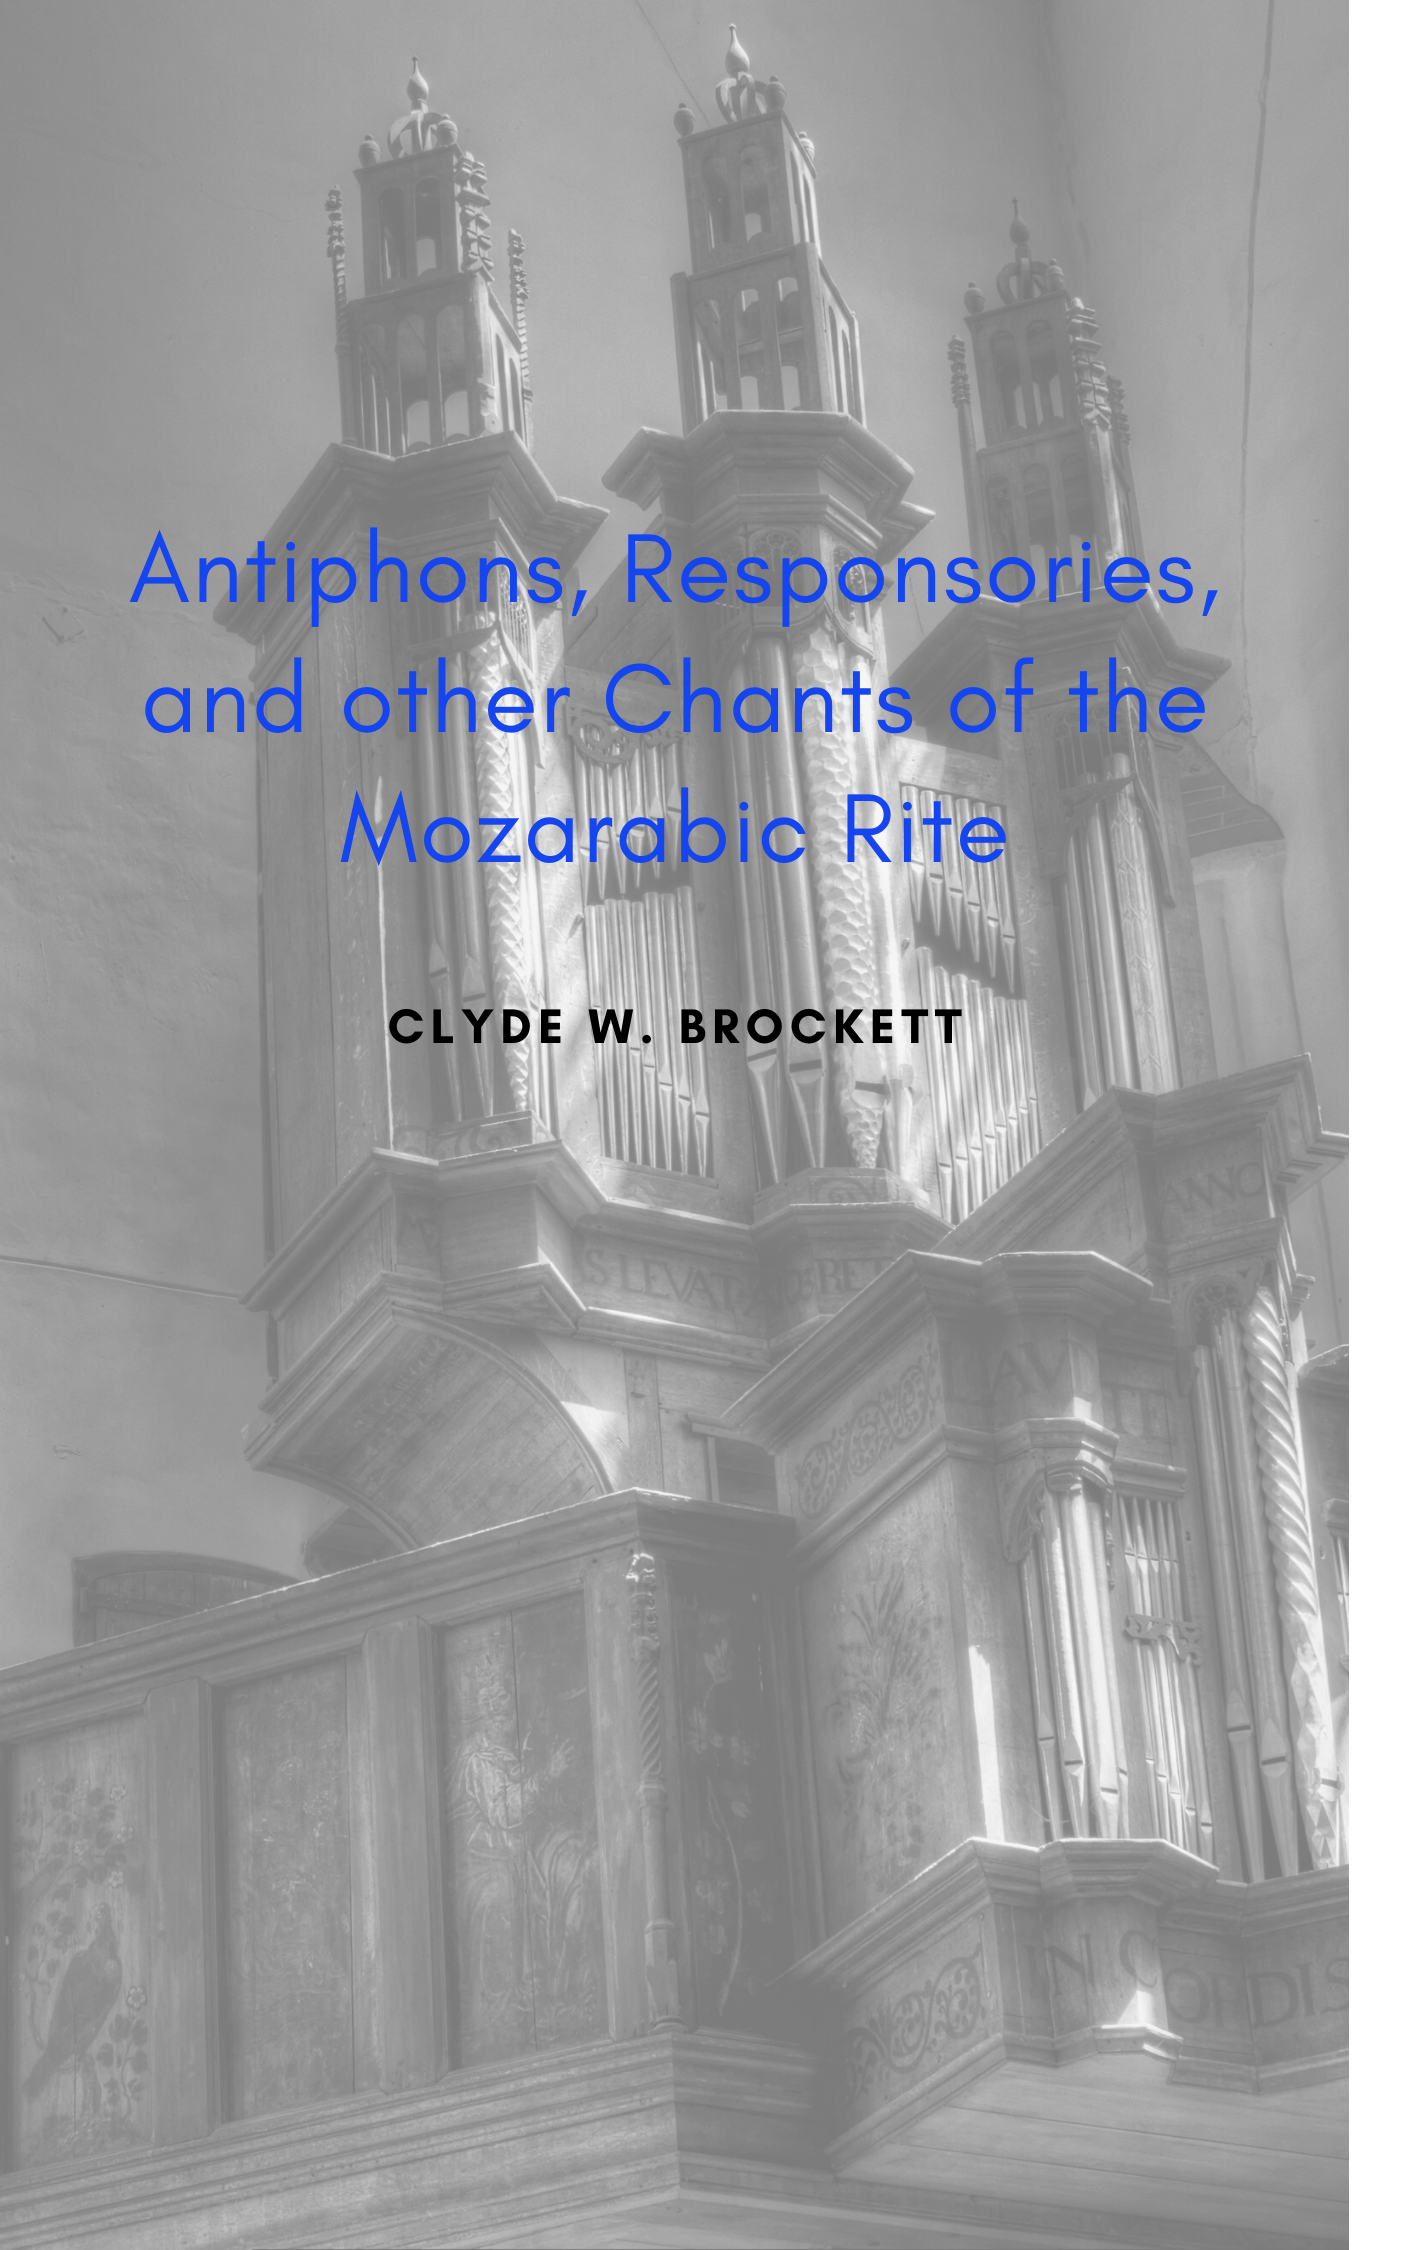 Antiphons, Responsories, and other Chants of the Mozarabic Rite